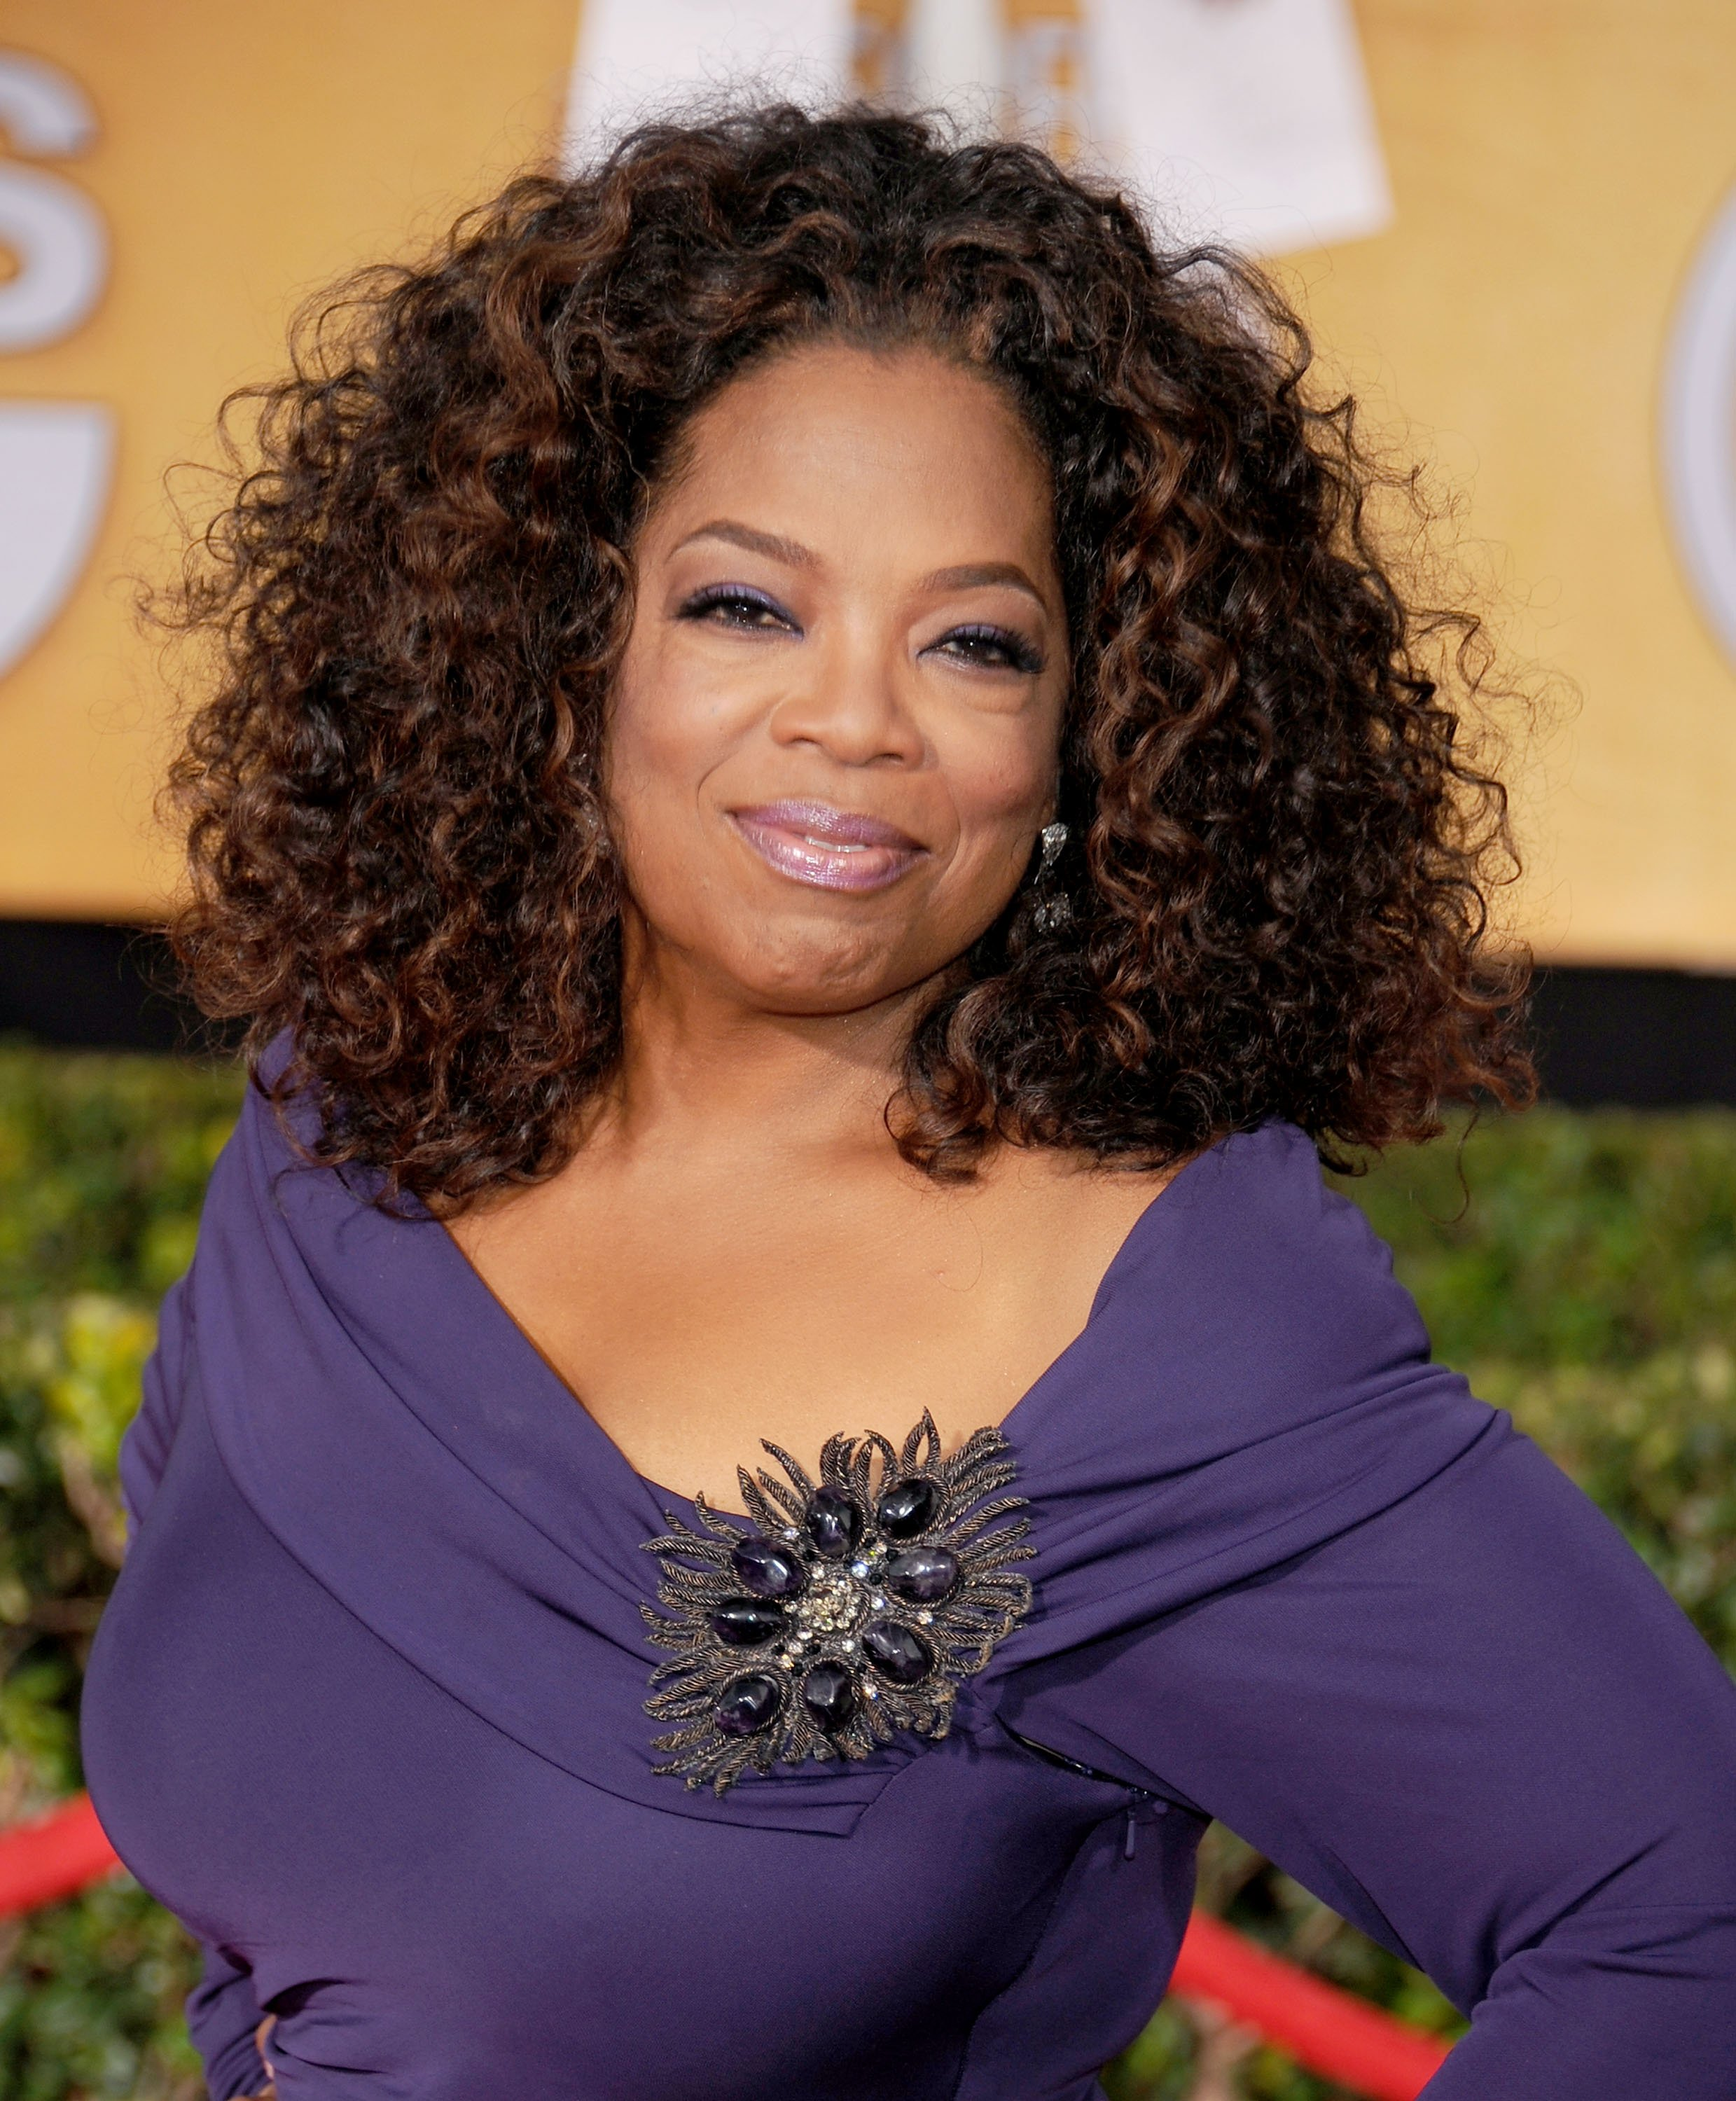 Oprah Winfrey arrives at the 20th Annual Screen Actors Guild Awards at The Shrine Auditorium on January 18, 2014 in Los Angeles, California.   Source: Getty Images